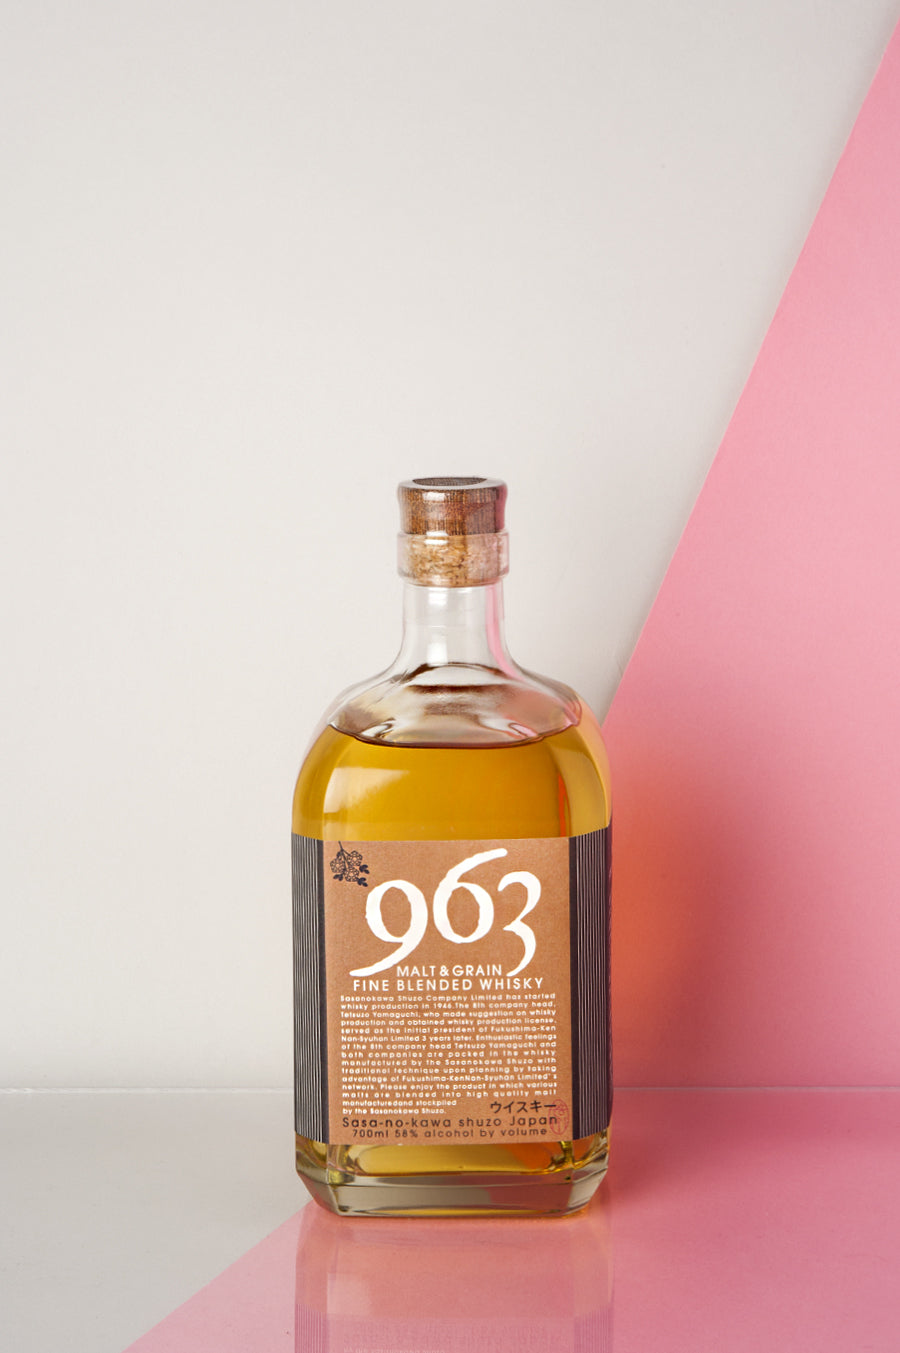 963 Malt and Grain Whisky